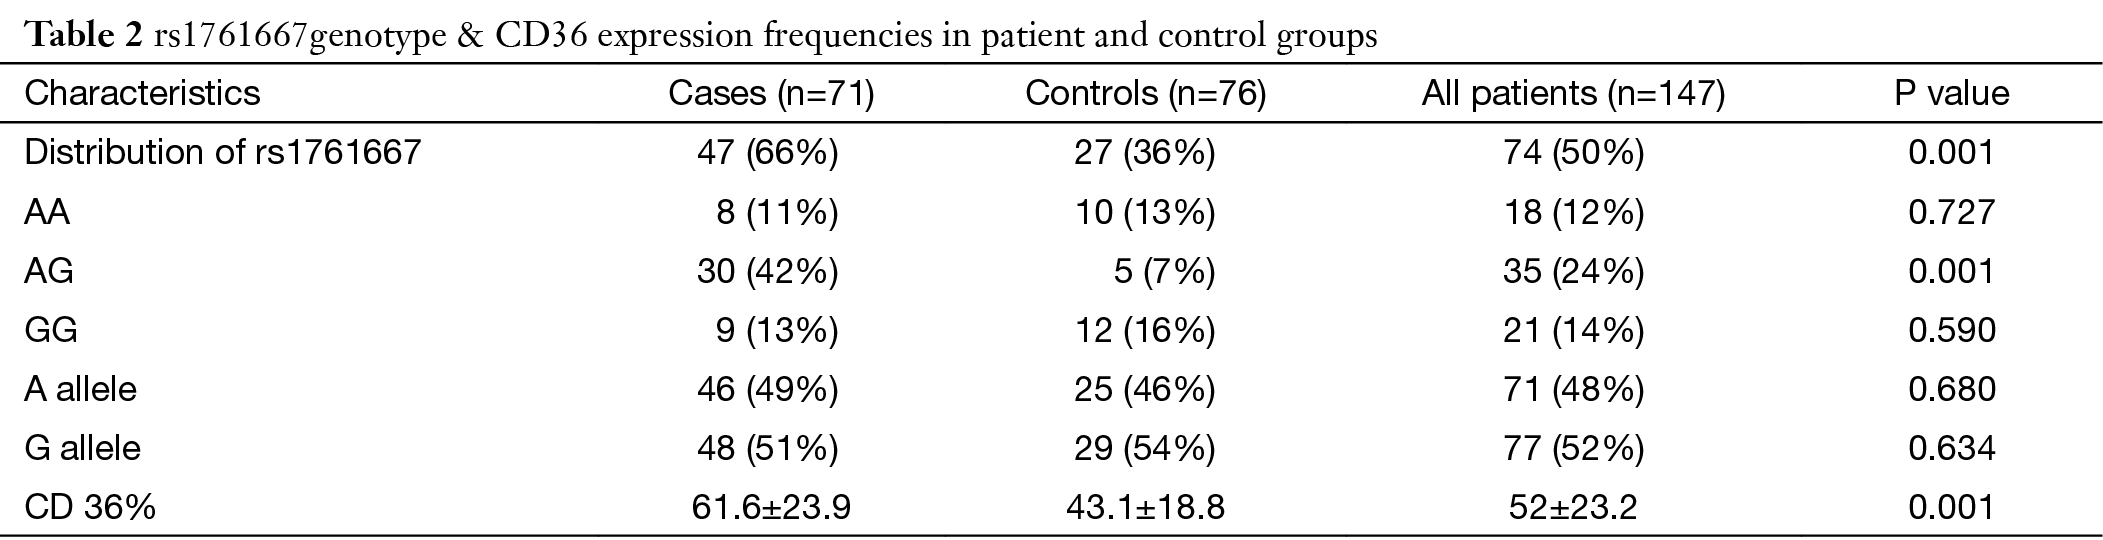 association between rs polymorphism of cd gene and risk full table